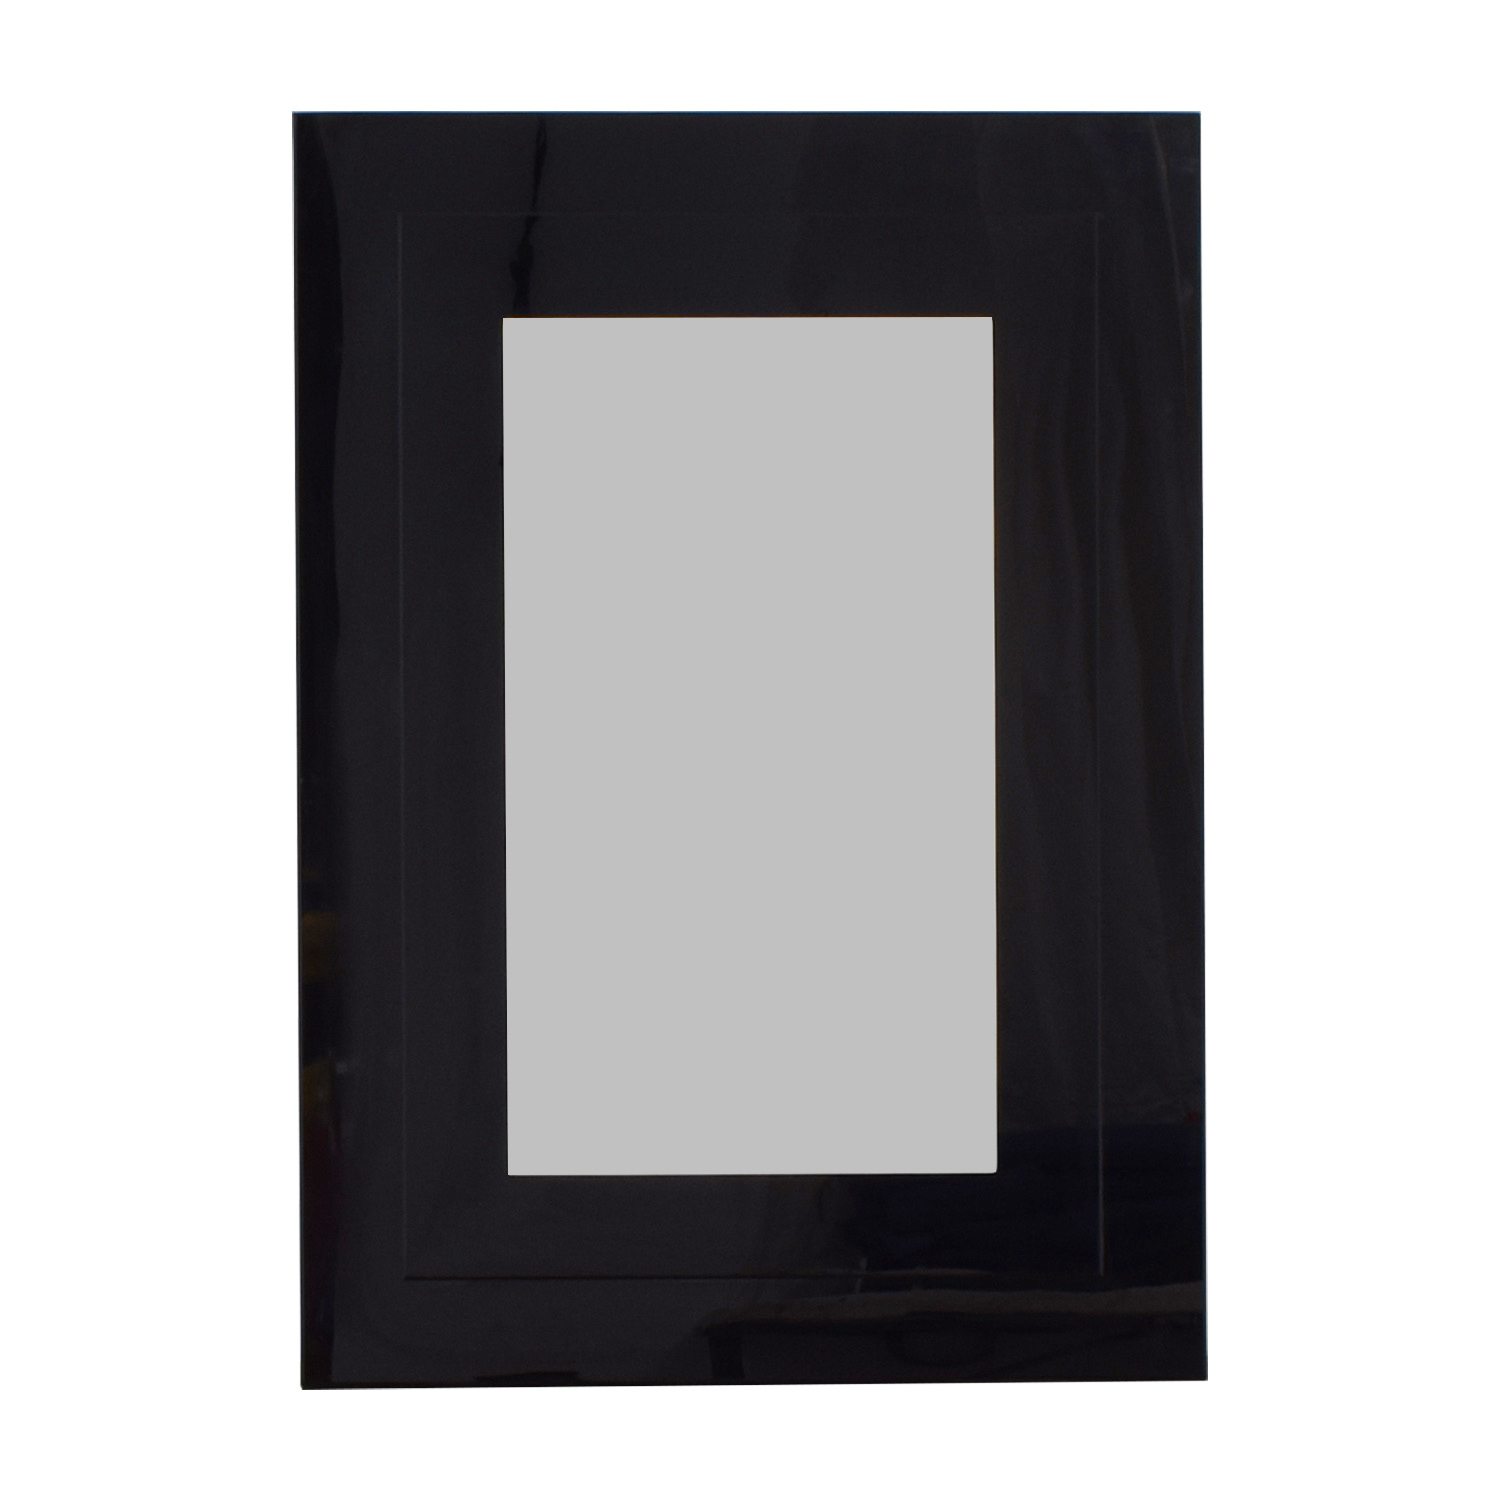 Glassworks Glassworks Black Framed Wall Mirror